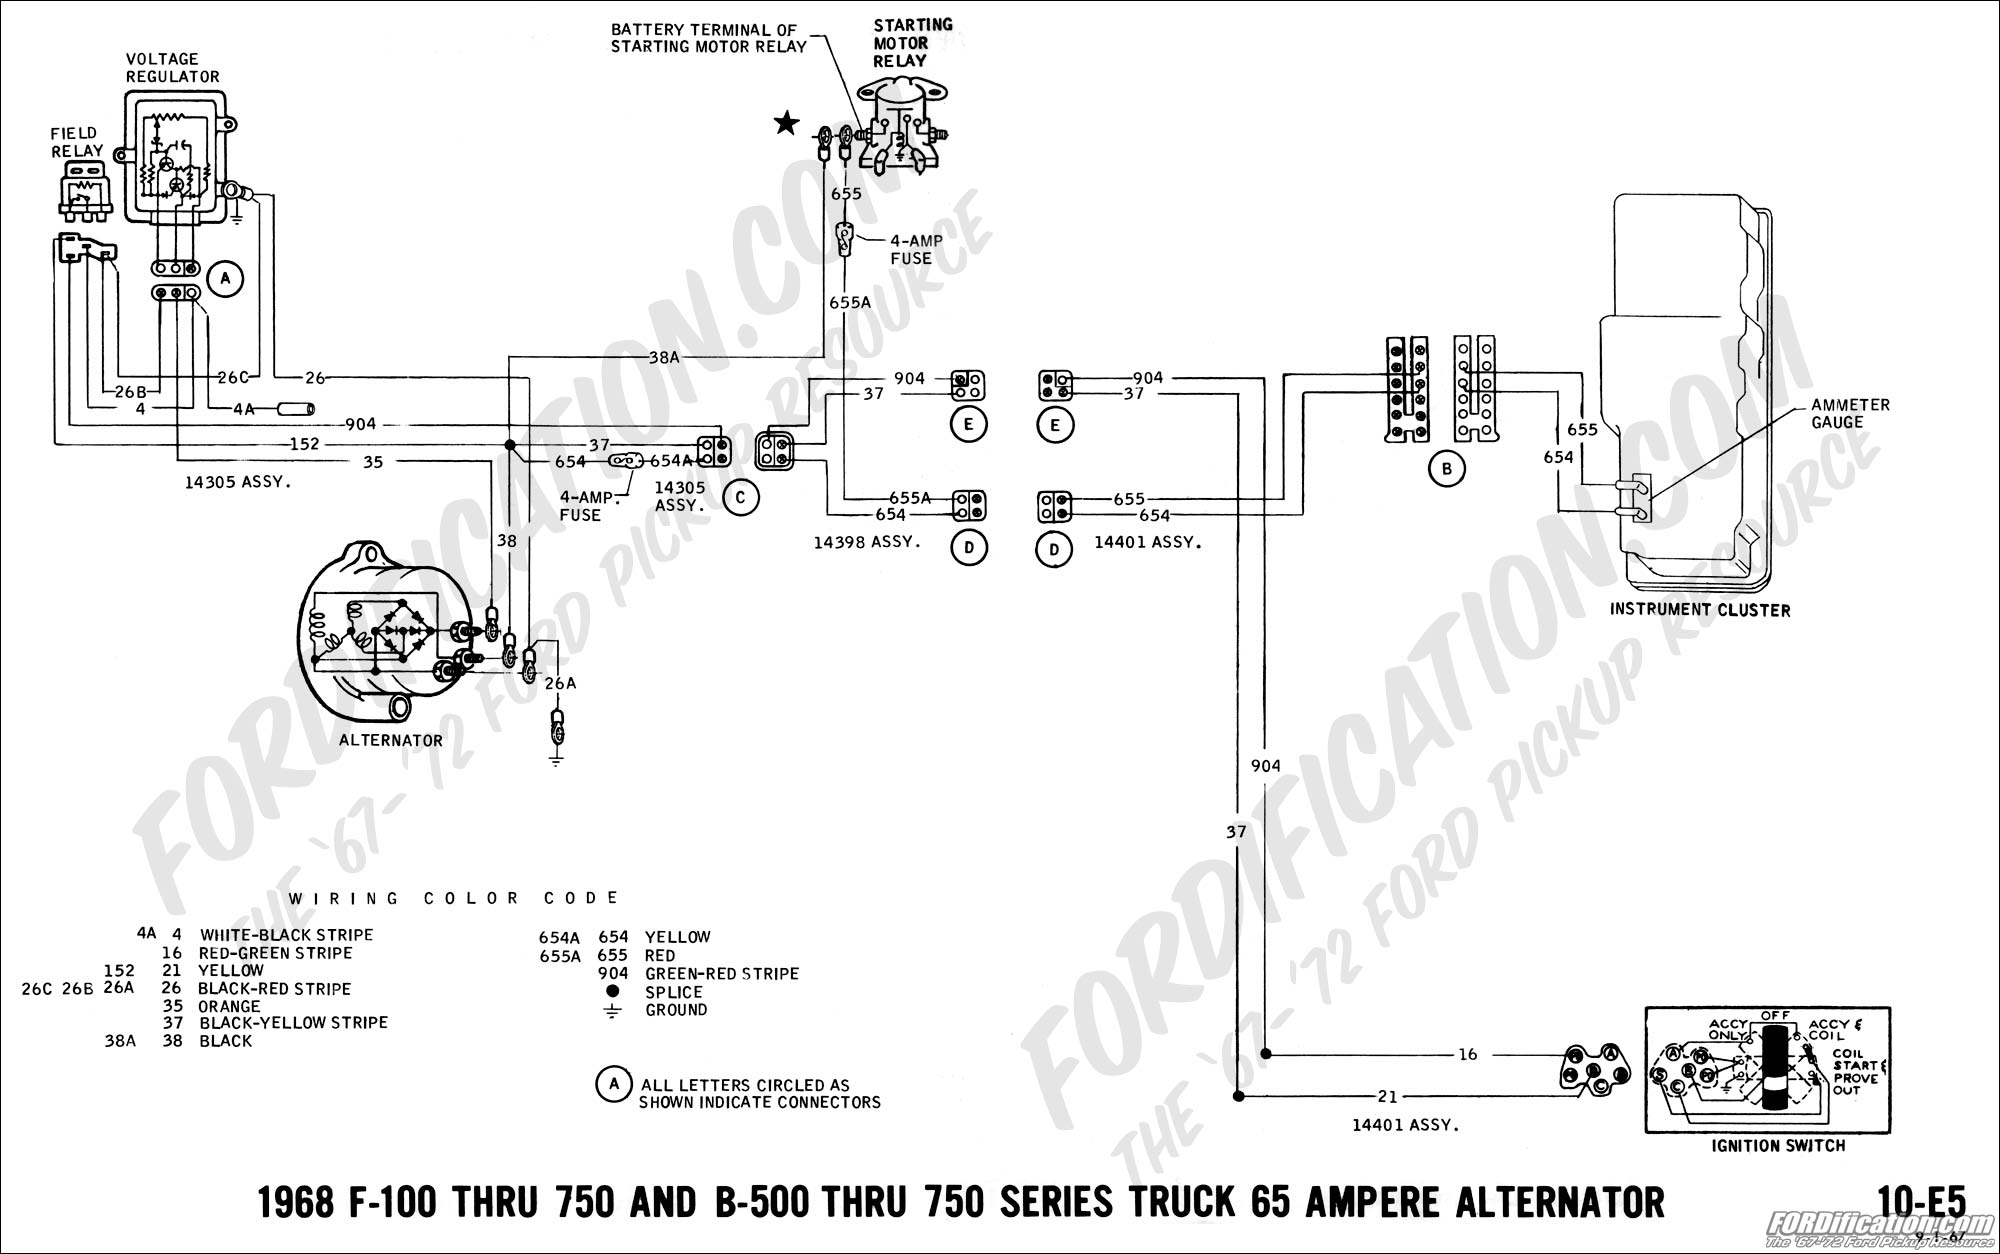 68 07 69 f100 wiring diagram 1973 ford f100 wiring diagram \u2022 wiring 1977 ford f100 wiring diagram at n-0.co